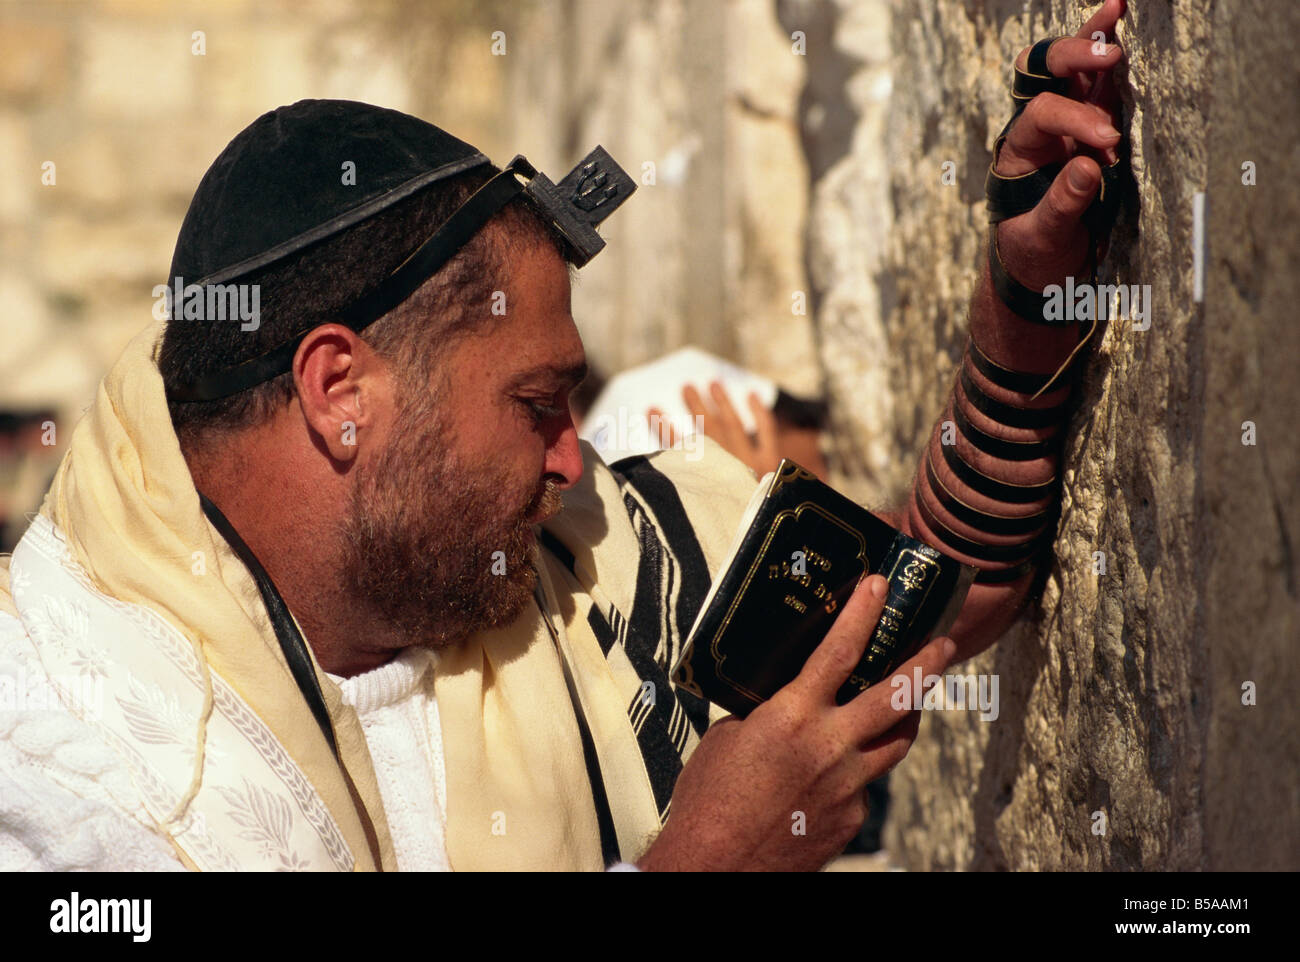 Close-up of Jew wearing shawl, skull cap and phylactery and holding a book, praying at the Western Wall in Jerusalem, - Stock Image